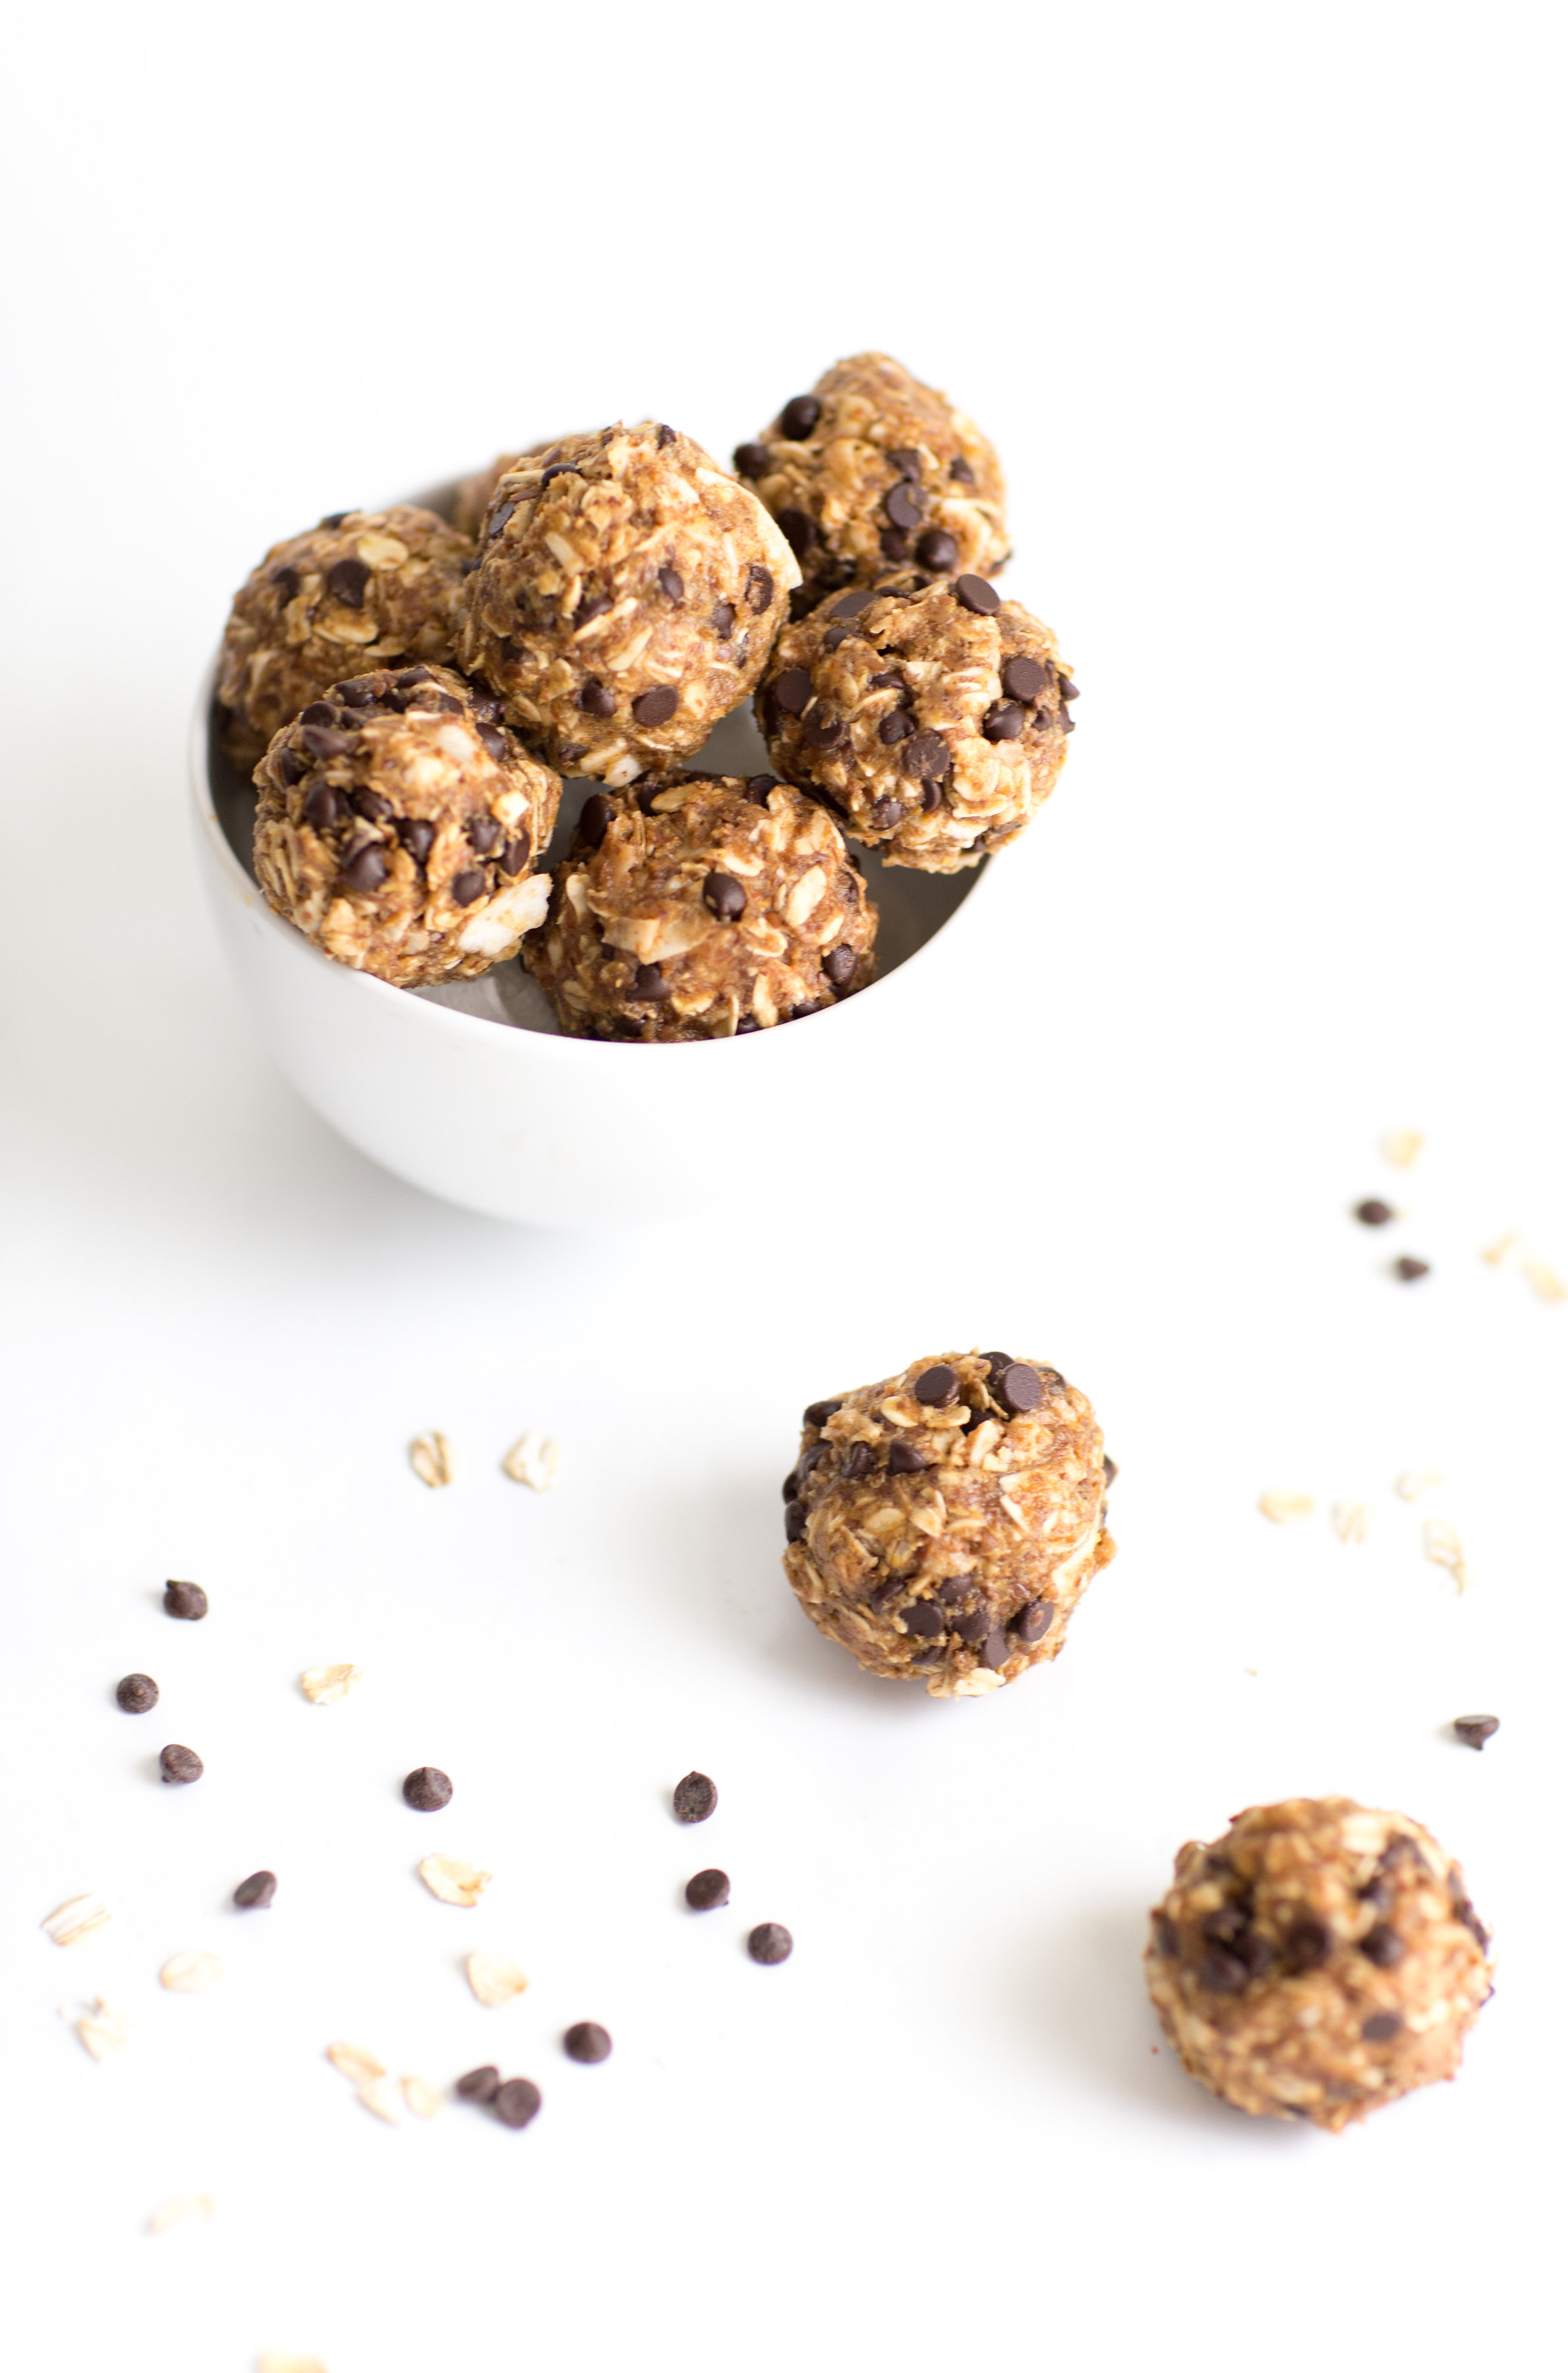 How to make the easiest (yummiest) no-bake healthy energy cookie bites (a.k.a., a guilt-free, dairy-free, and gluten-free way to snack happy!) Psst ... kids LOVE this recipe. #energybites #cookies #healthycookies #nobakecookies #nobake #healthydessert #healthysnack #snack #glutenfree #dairyfree Click through for the recipe. | glitterinc.com | @glitterinc